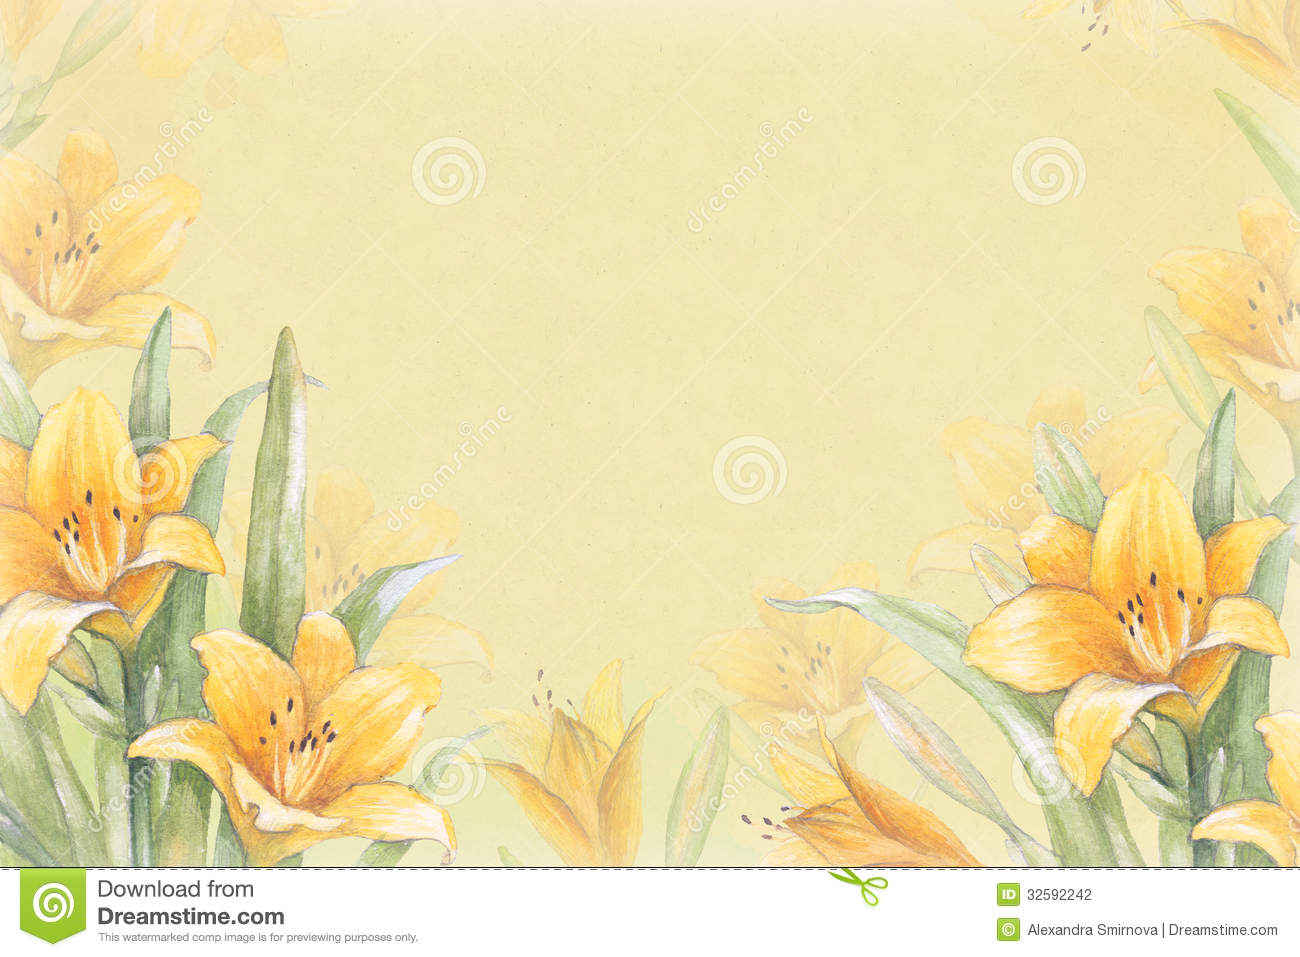 Watercolor background with illustration of lily flower stock royalty free stock photo m4hsunfo Images